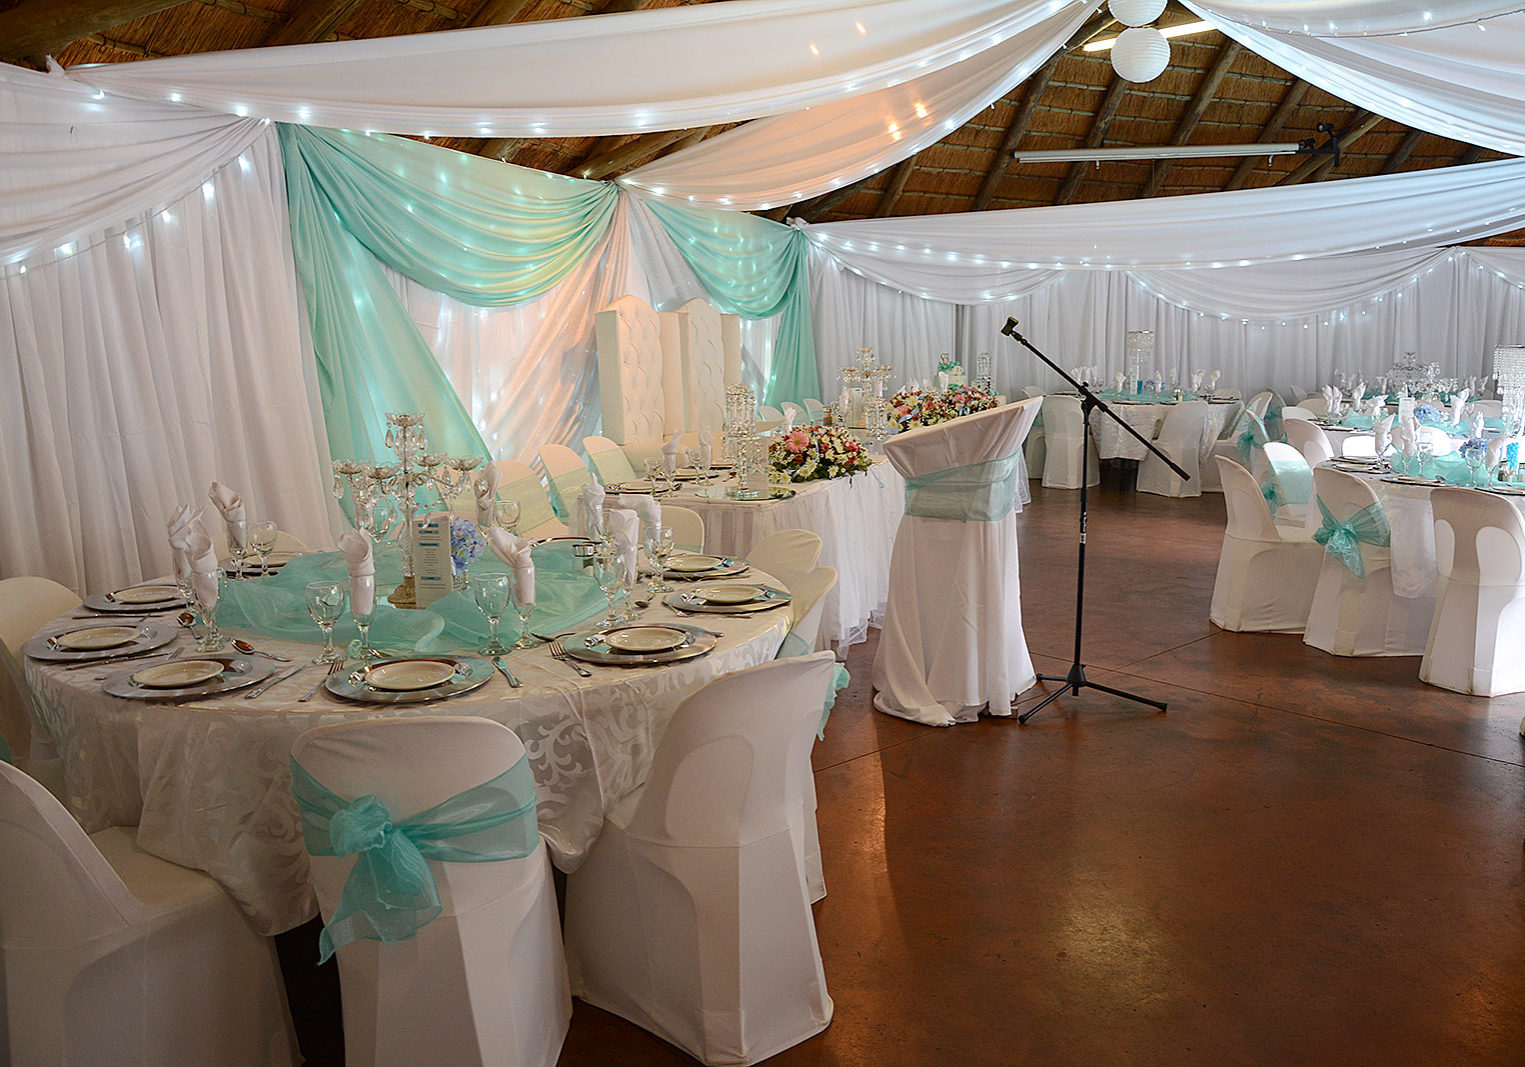 ascot, weddings, functions, hippo room